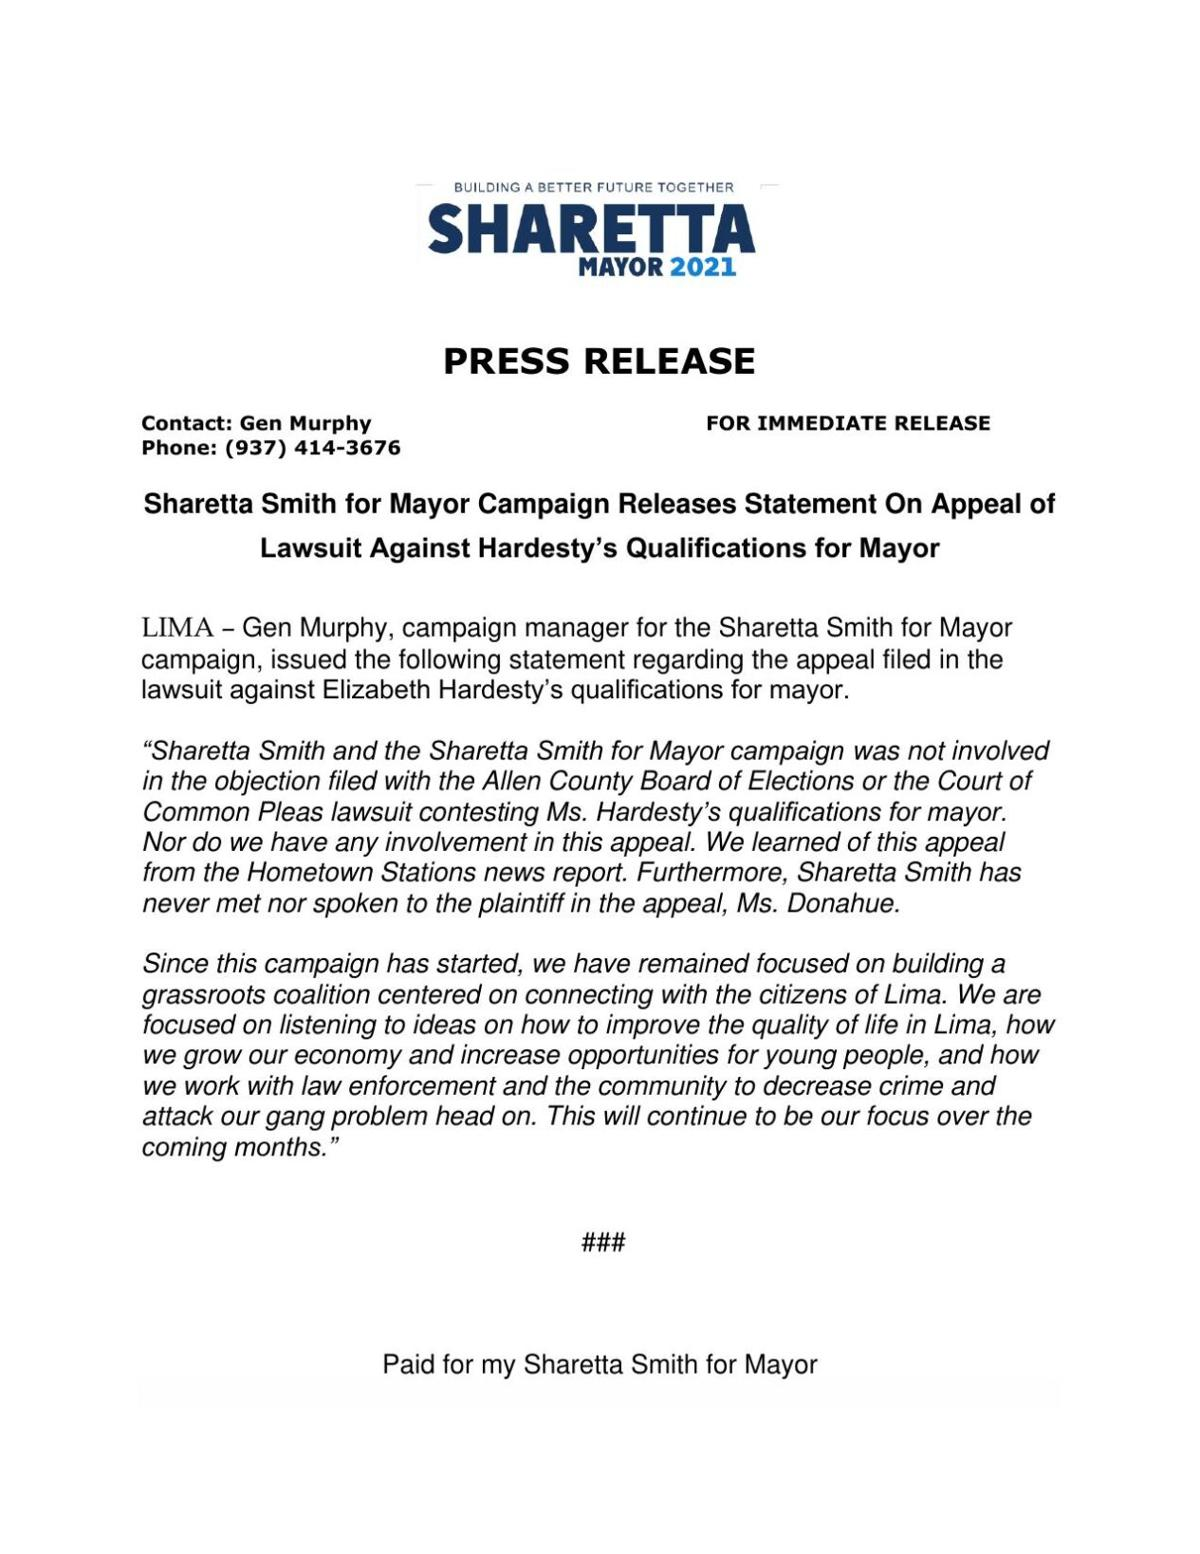 Appeals Case Statement from Sharetta Smith for Mayor Campaign.pdf